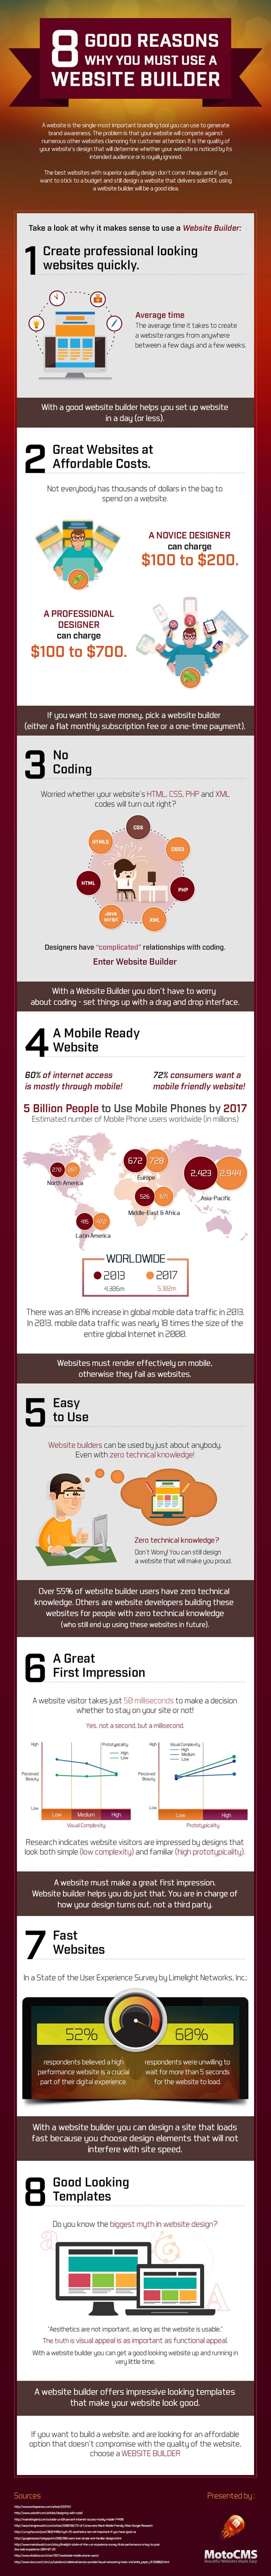 MotoCMS How to Make a Website Infographic